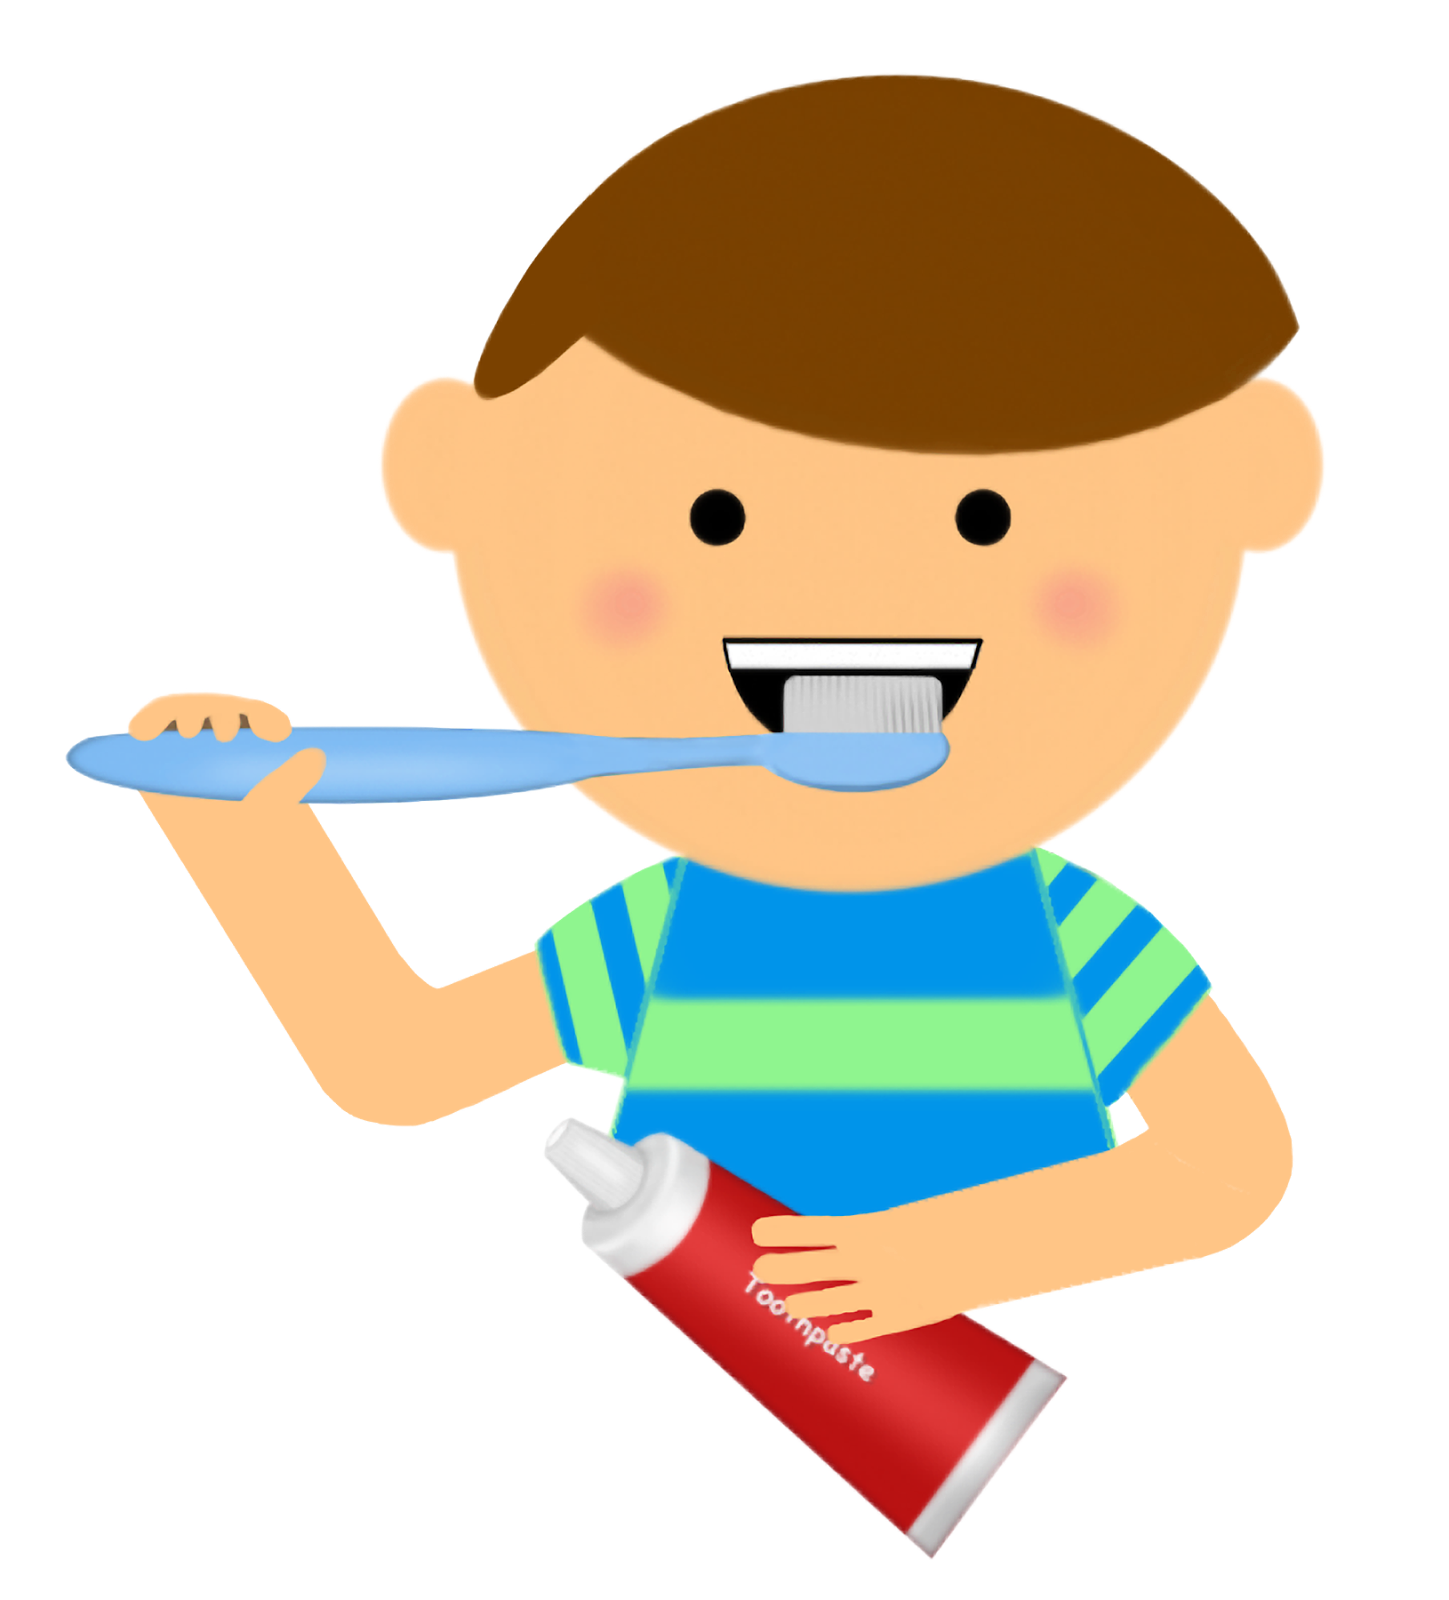 Teeth clipart children's Co co Brushing Pictures graphics